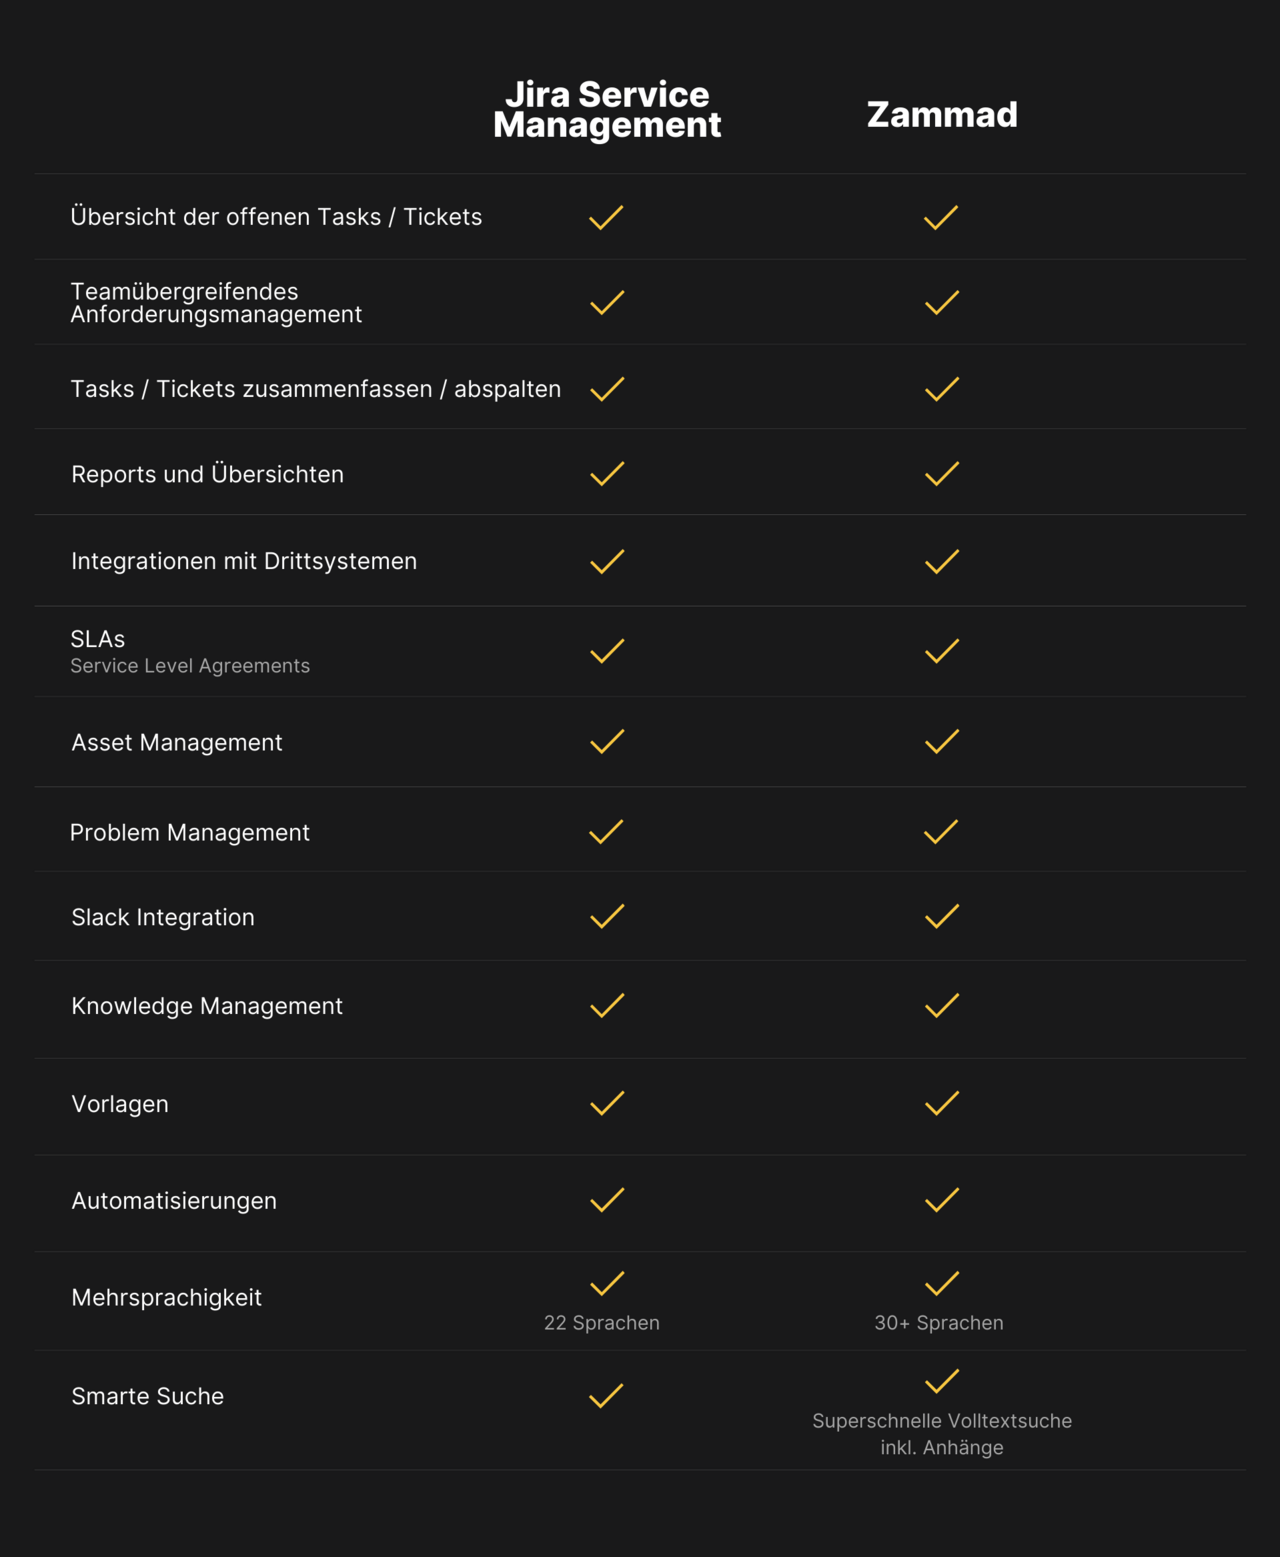 Comparison of the features of Jira Service Management and Zammad